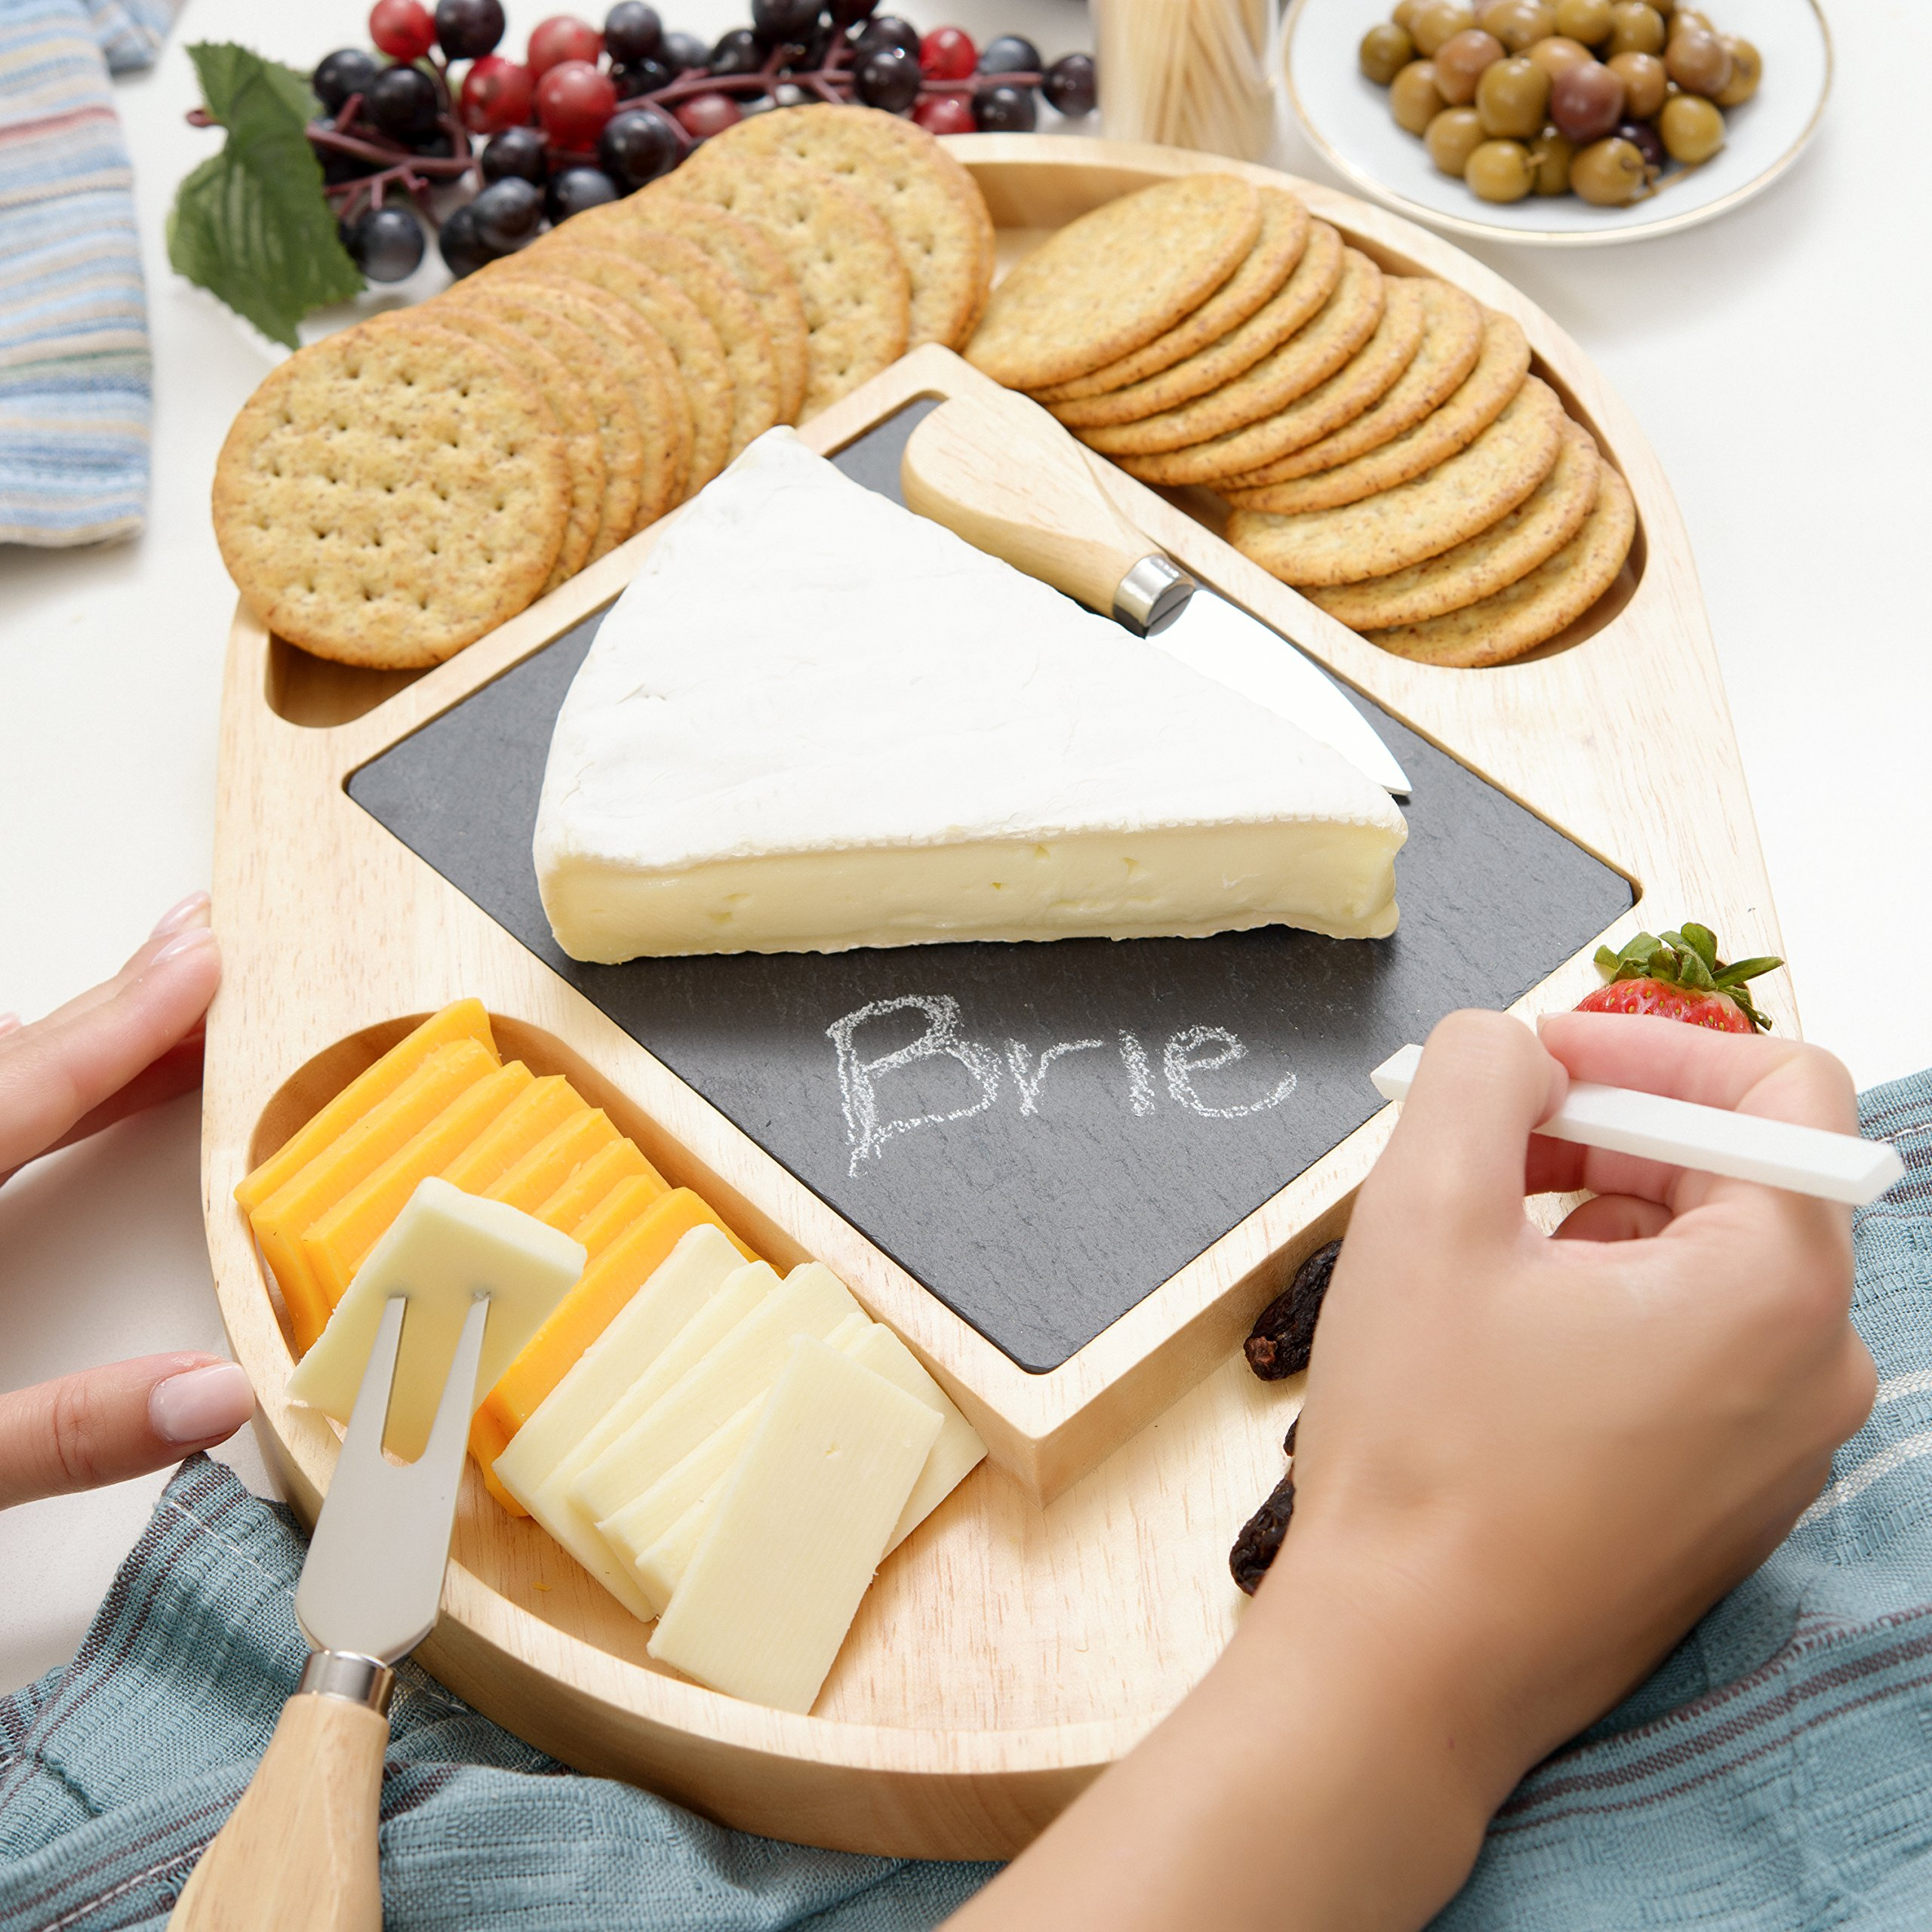 Slate and Wood Cheese Board Set, Include Cheese Tools, Chalk, Removeable Slate Cheeseboard Platter Tray for Easy Cleaning [14.5'' x 10.5'']